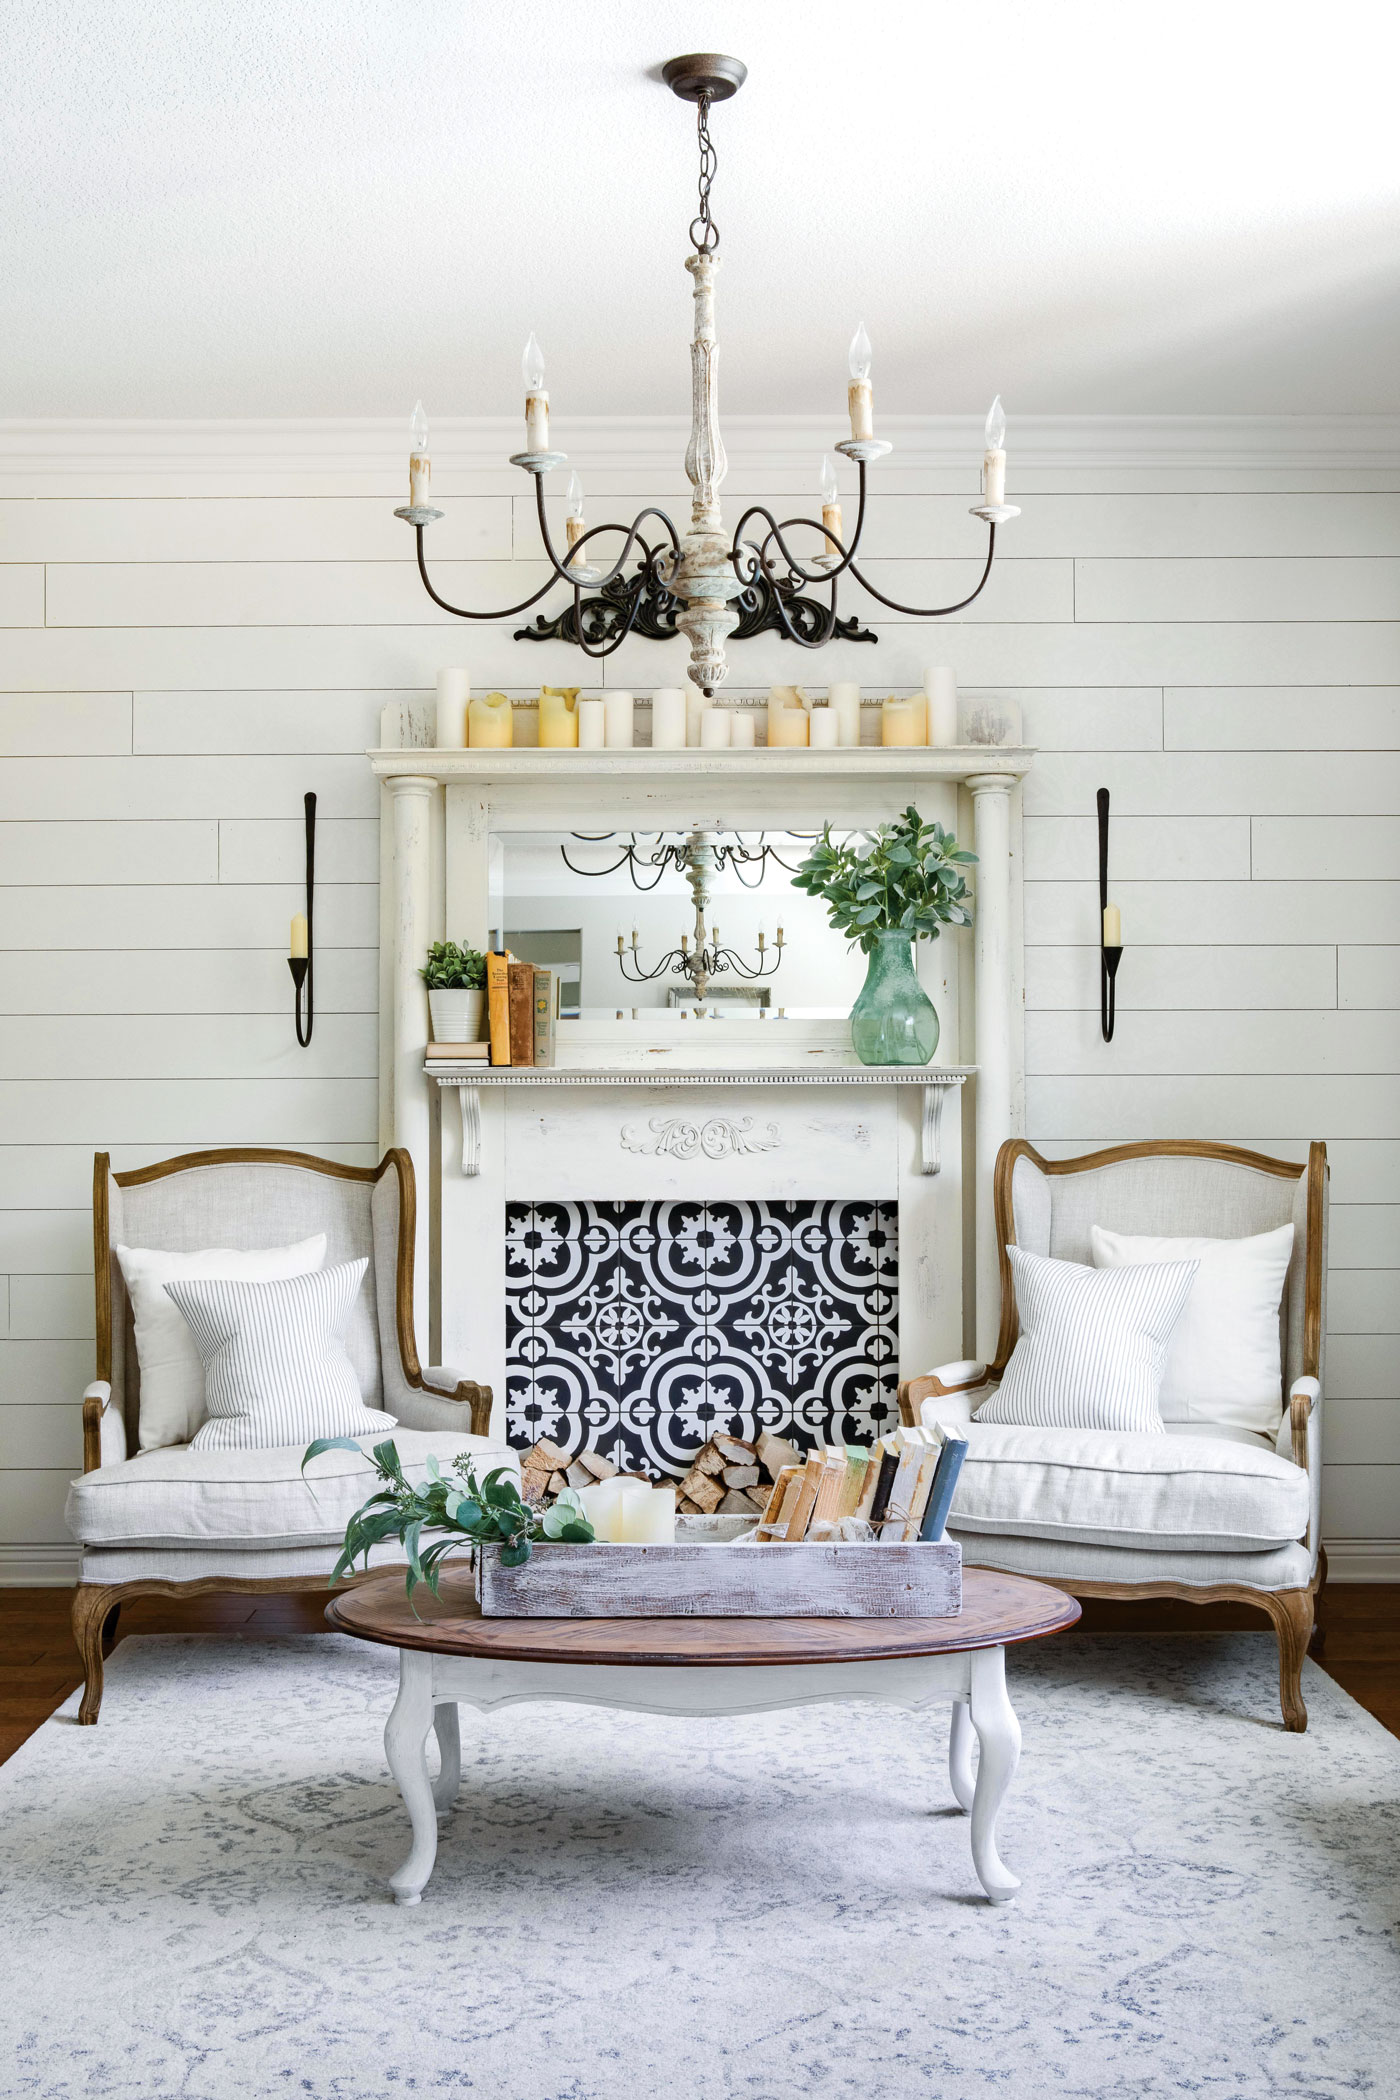 How To Design Your Mantel And Fireplace American Farmhouse Lifestyle